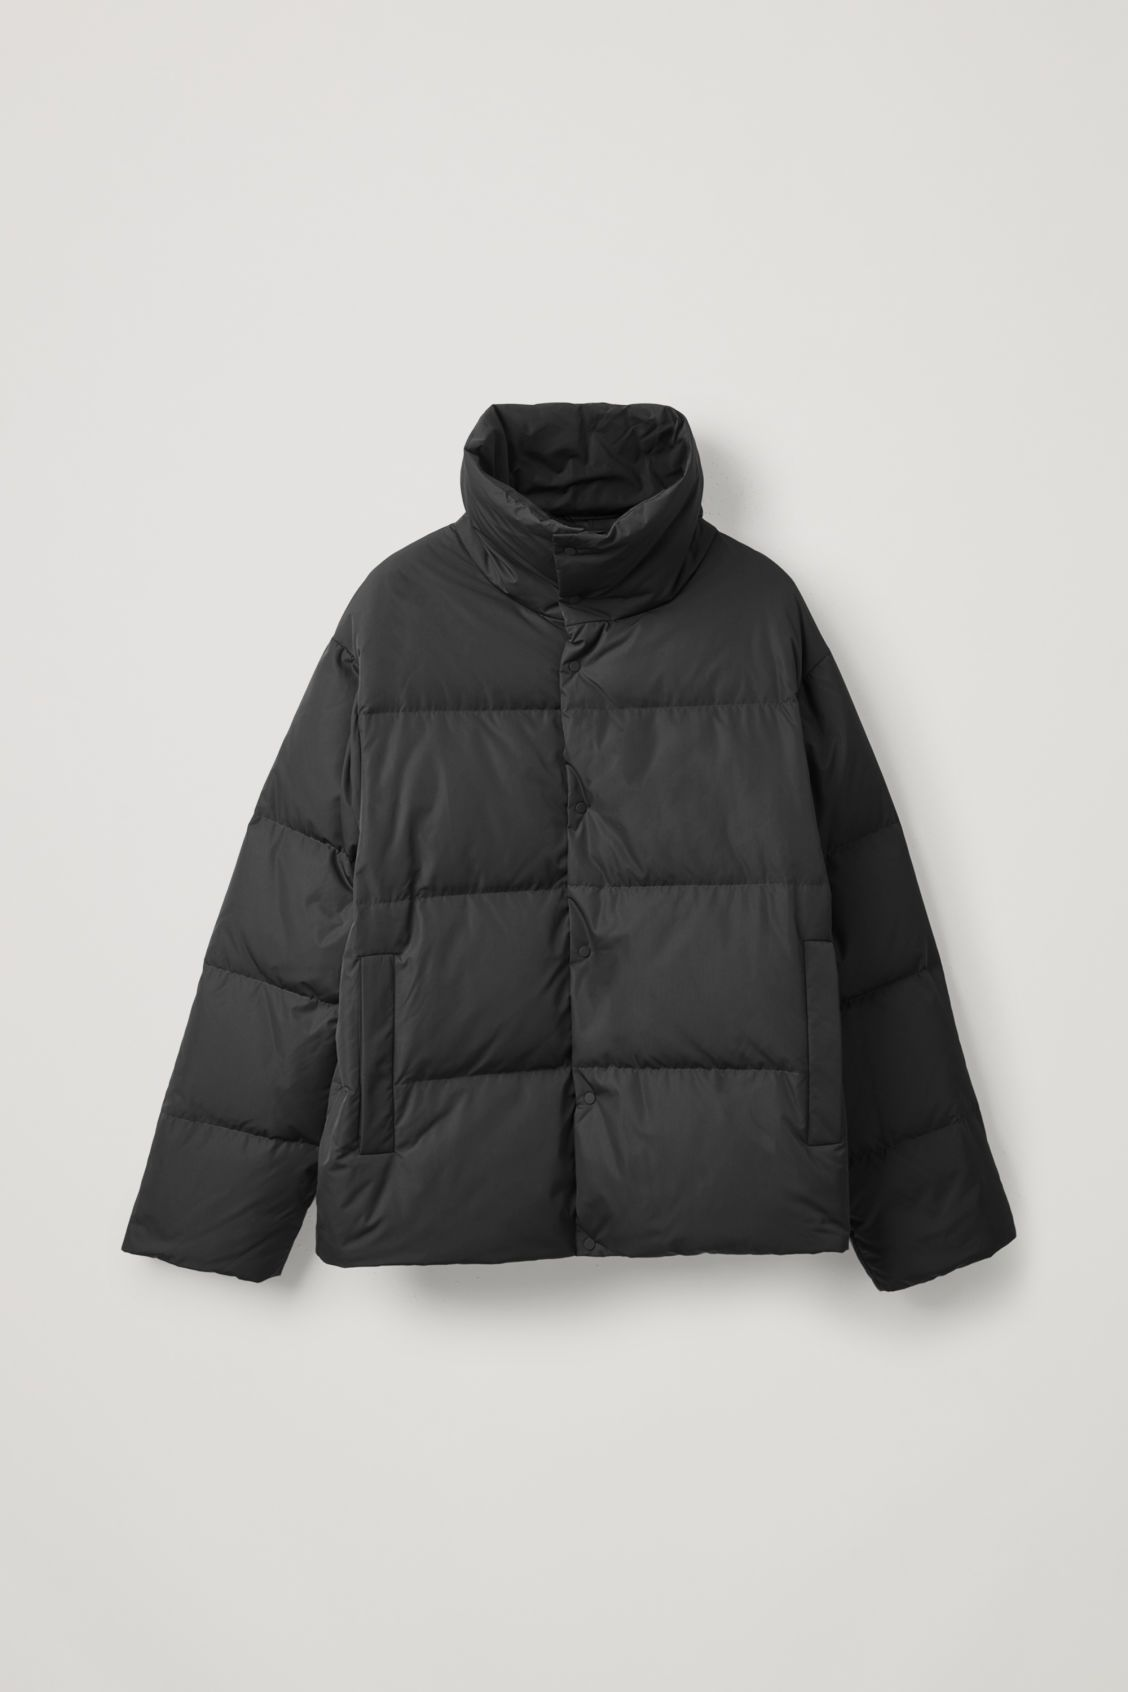 Productpage In 2021 Jackets Puffer Jackets Short Puffer Jacket [ 1692 x 1128 Pixel ]